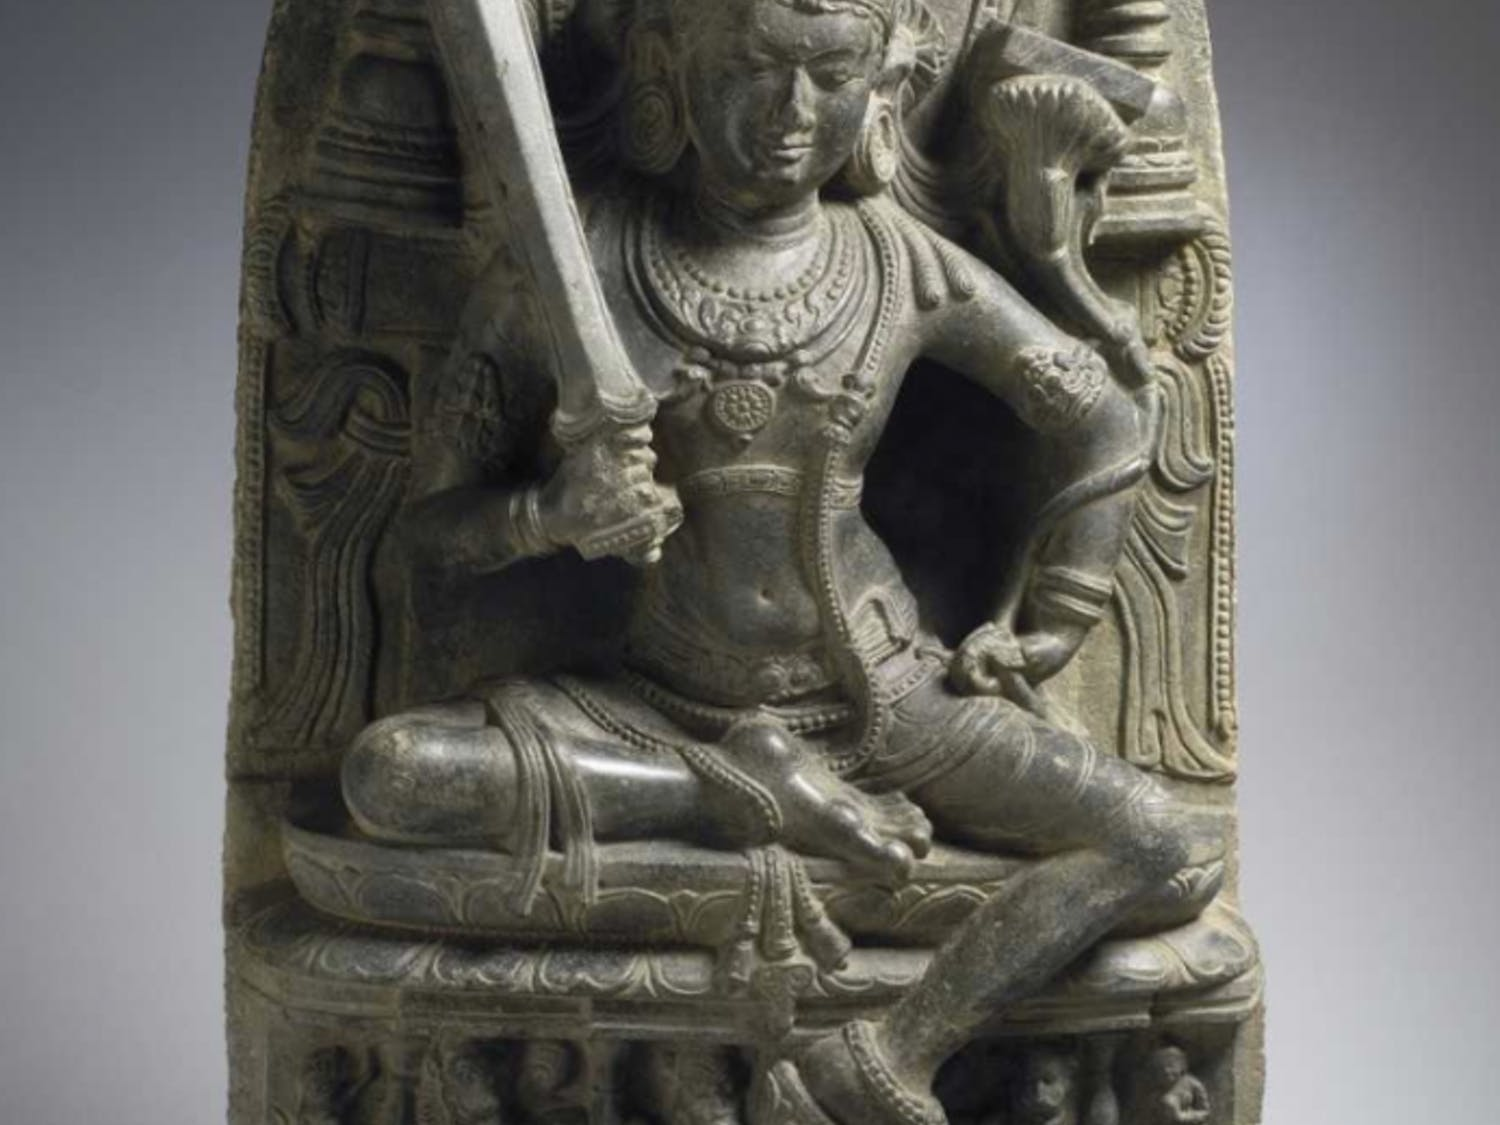 Unidentified Artist  Eastern India, Bengal, Pala Dynasty, 10th century Manjusri, c. 10th century phyllite 33 3/8 x 20 1/4 x 8 11/16 in. (84.7 x 51.4 x 22 cm) Photo courtesy of The Ackland Art Museum.